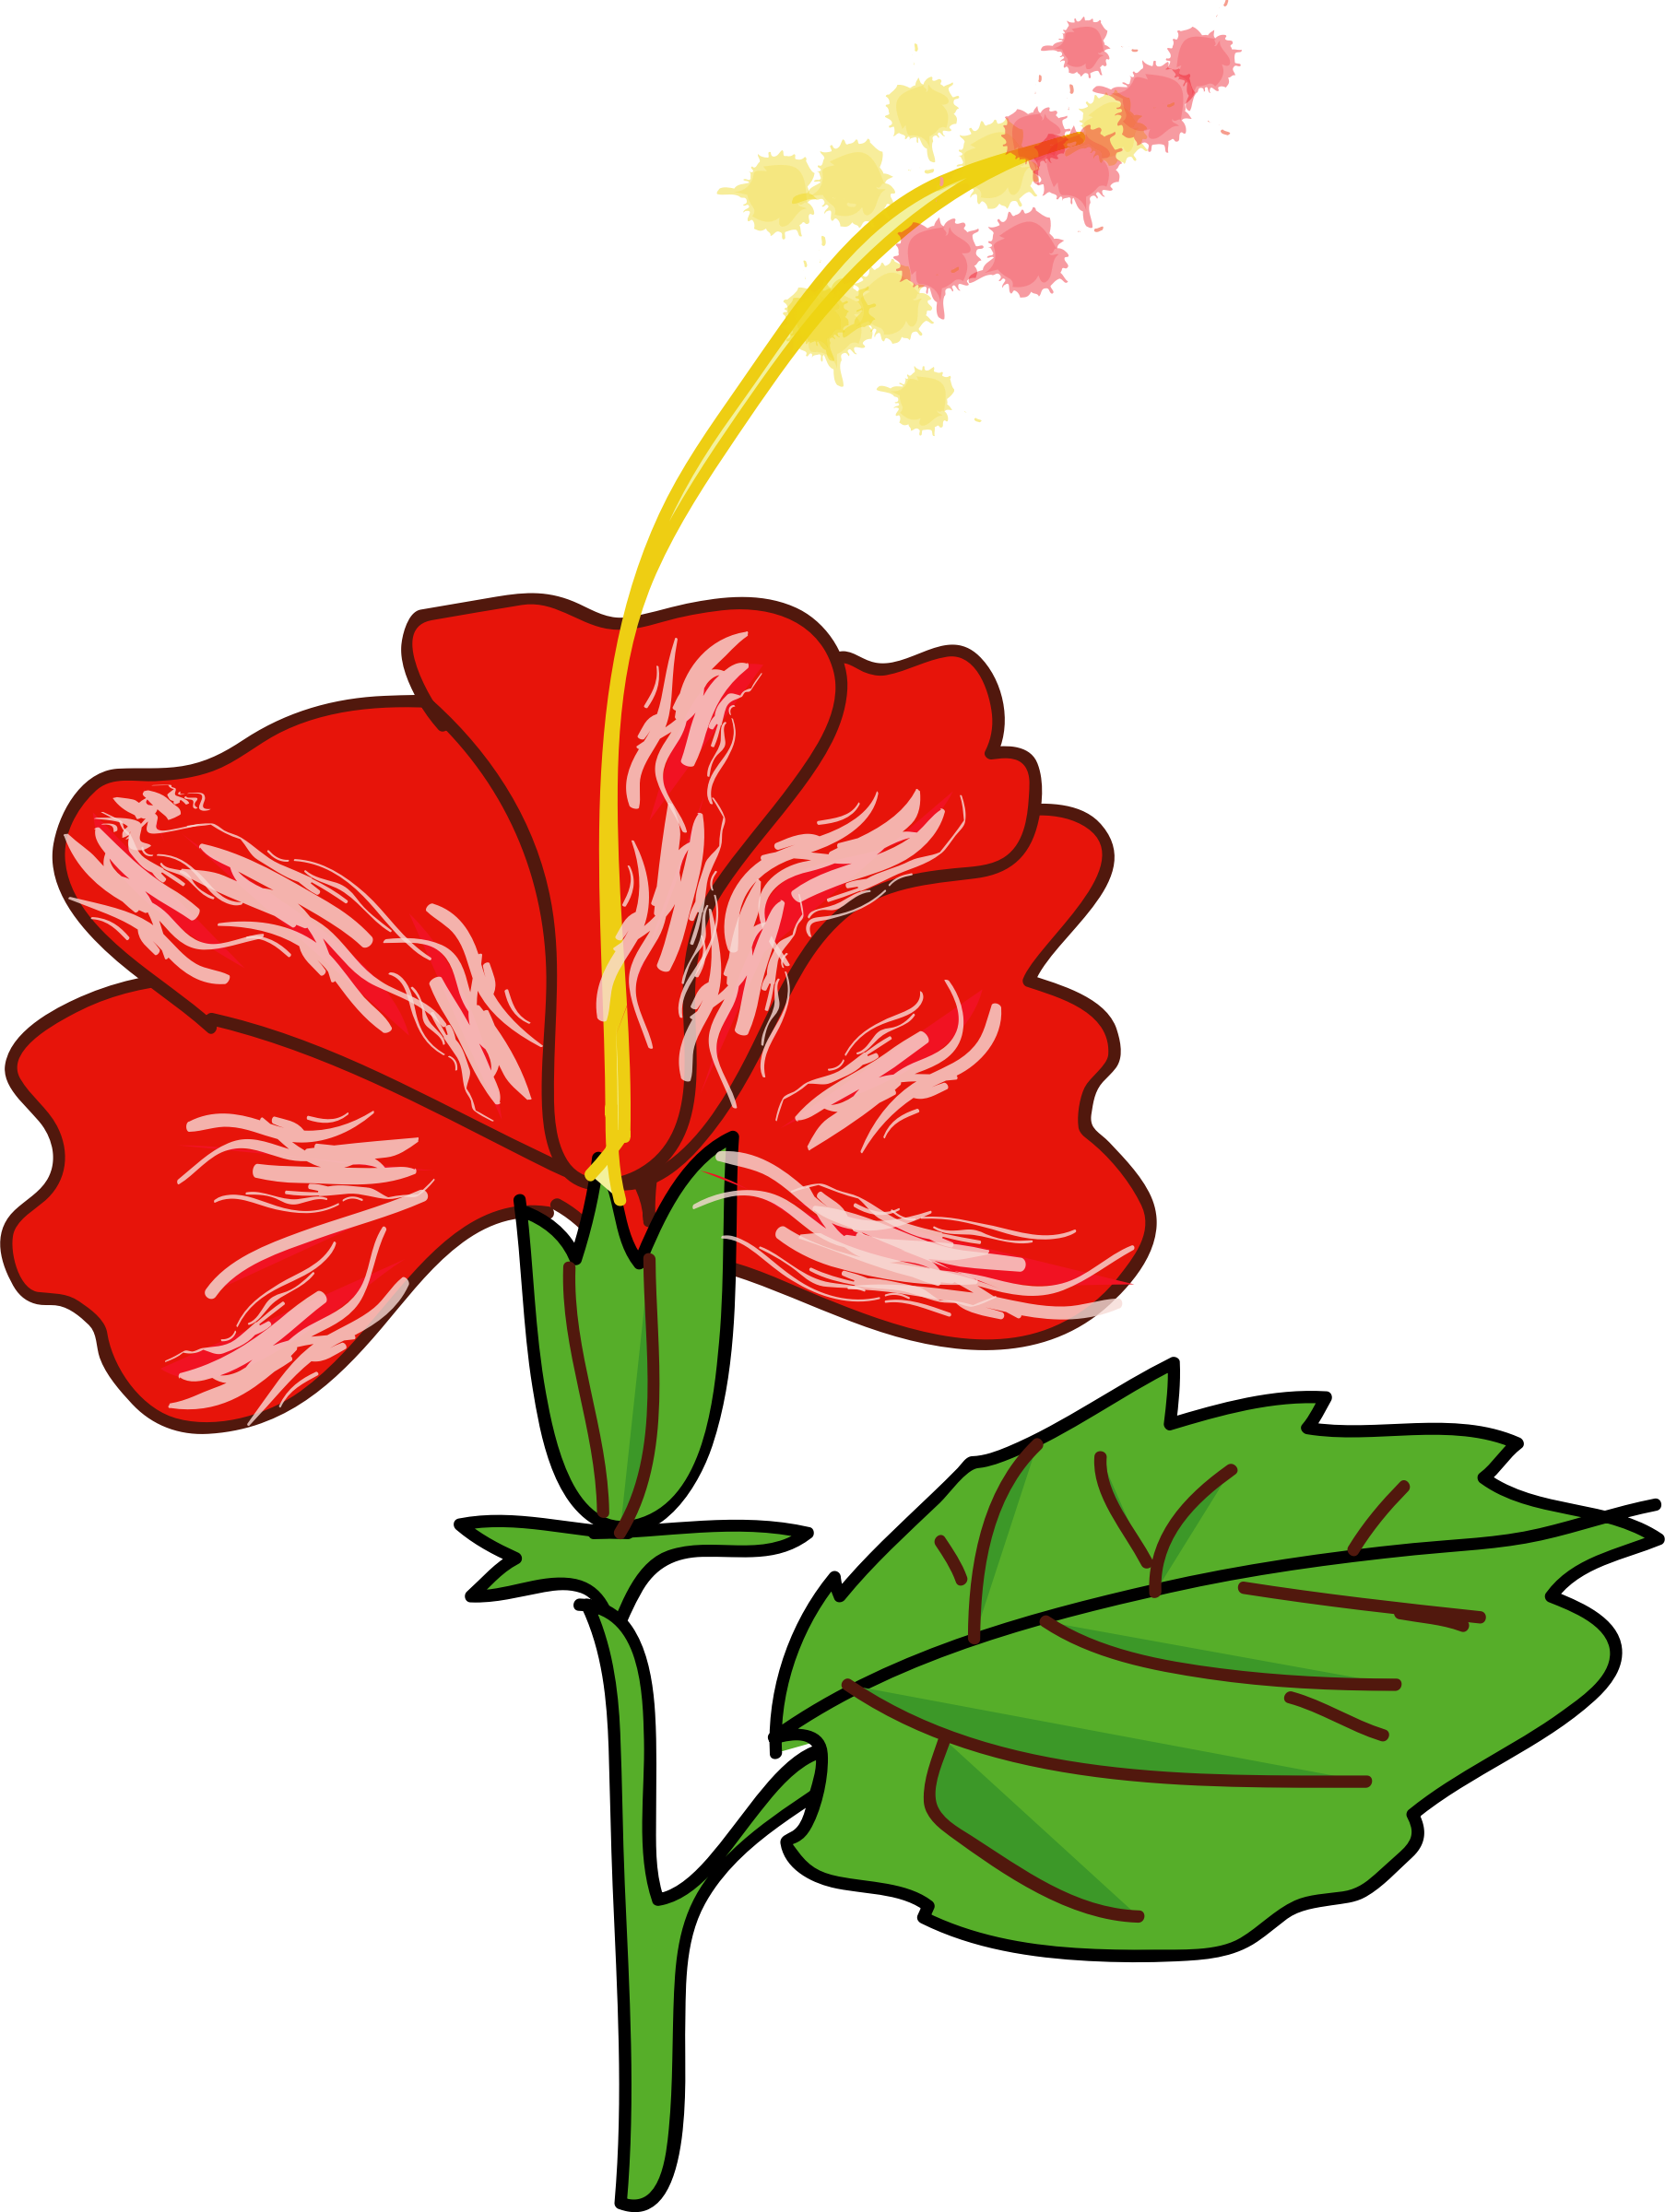 Flower plant clipart png transparent Red Flower Clipart hybiscus - Free Clipart on Dumielauxepices.net png transparent